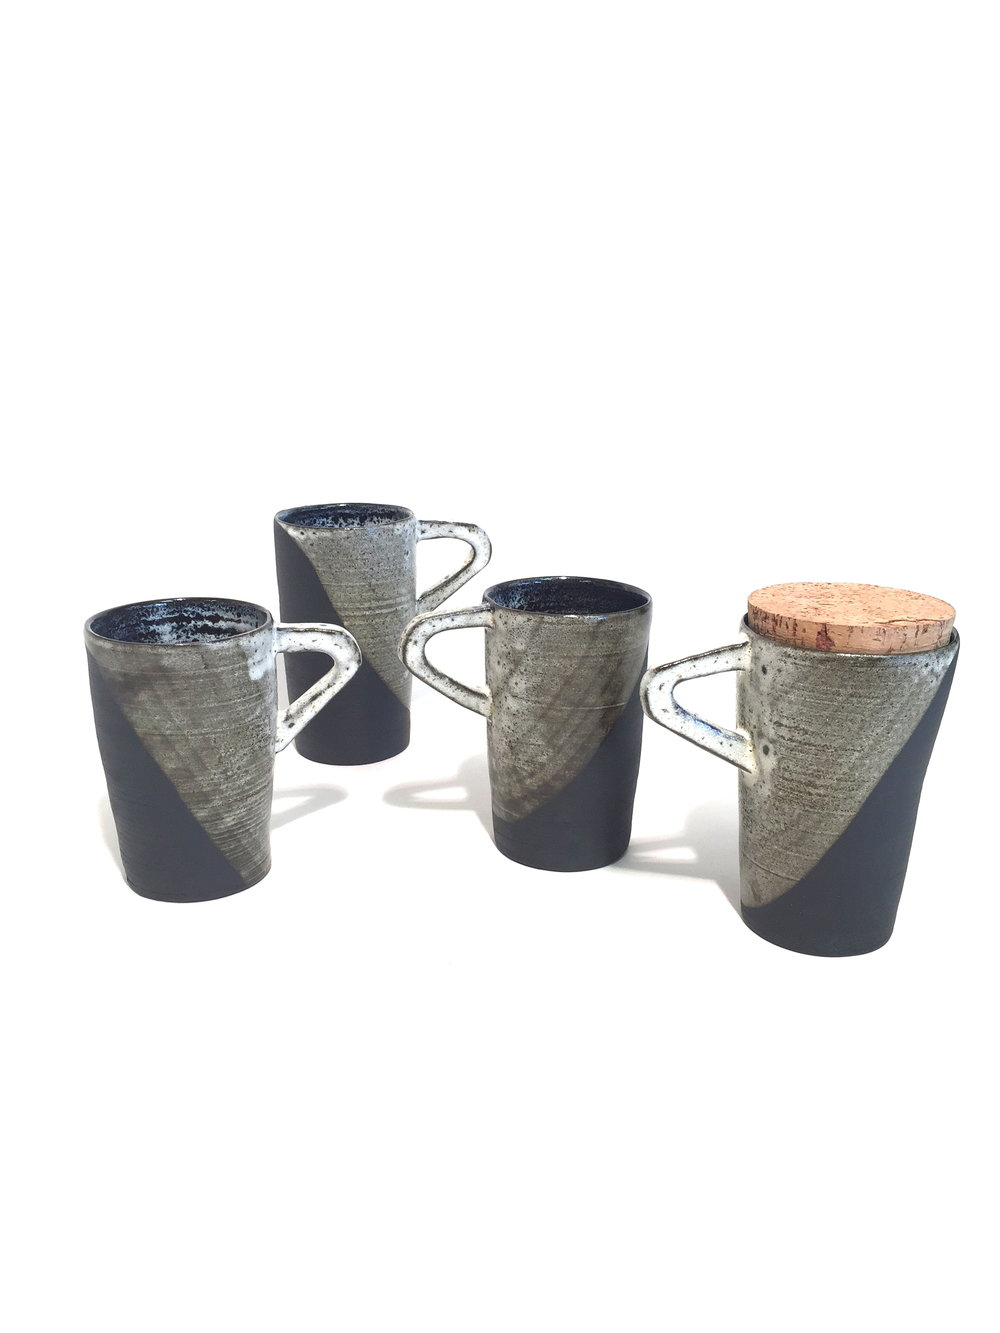 Black Bands Travel Mugs with Cork